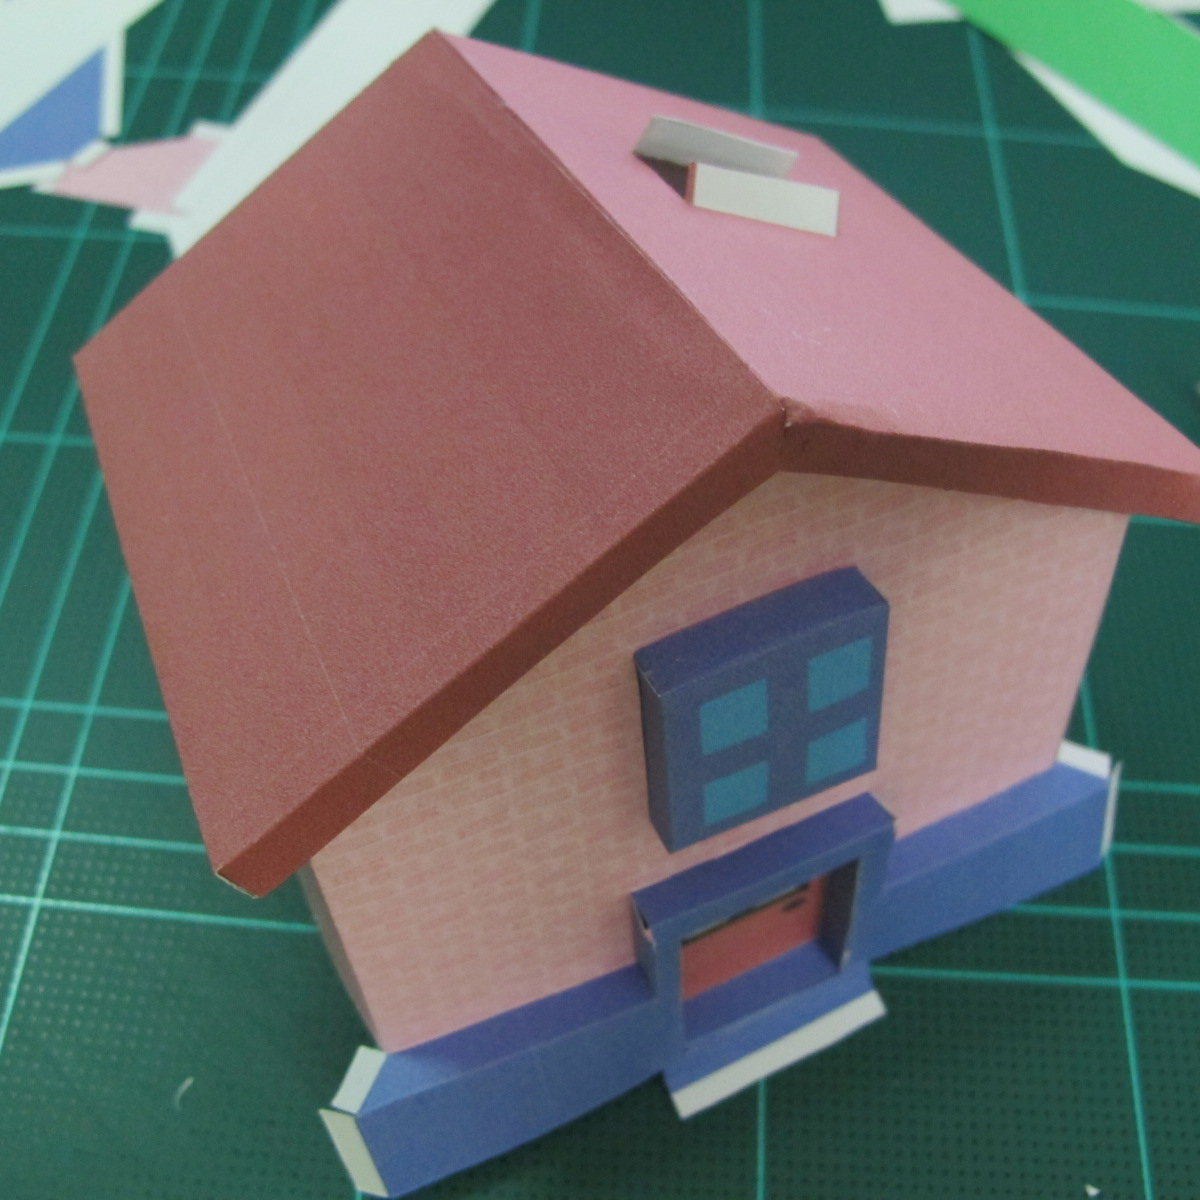 Little House Papercraft Model on Craft Paper